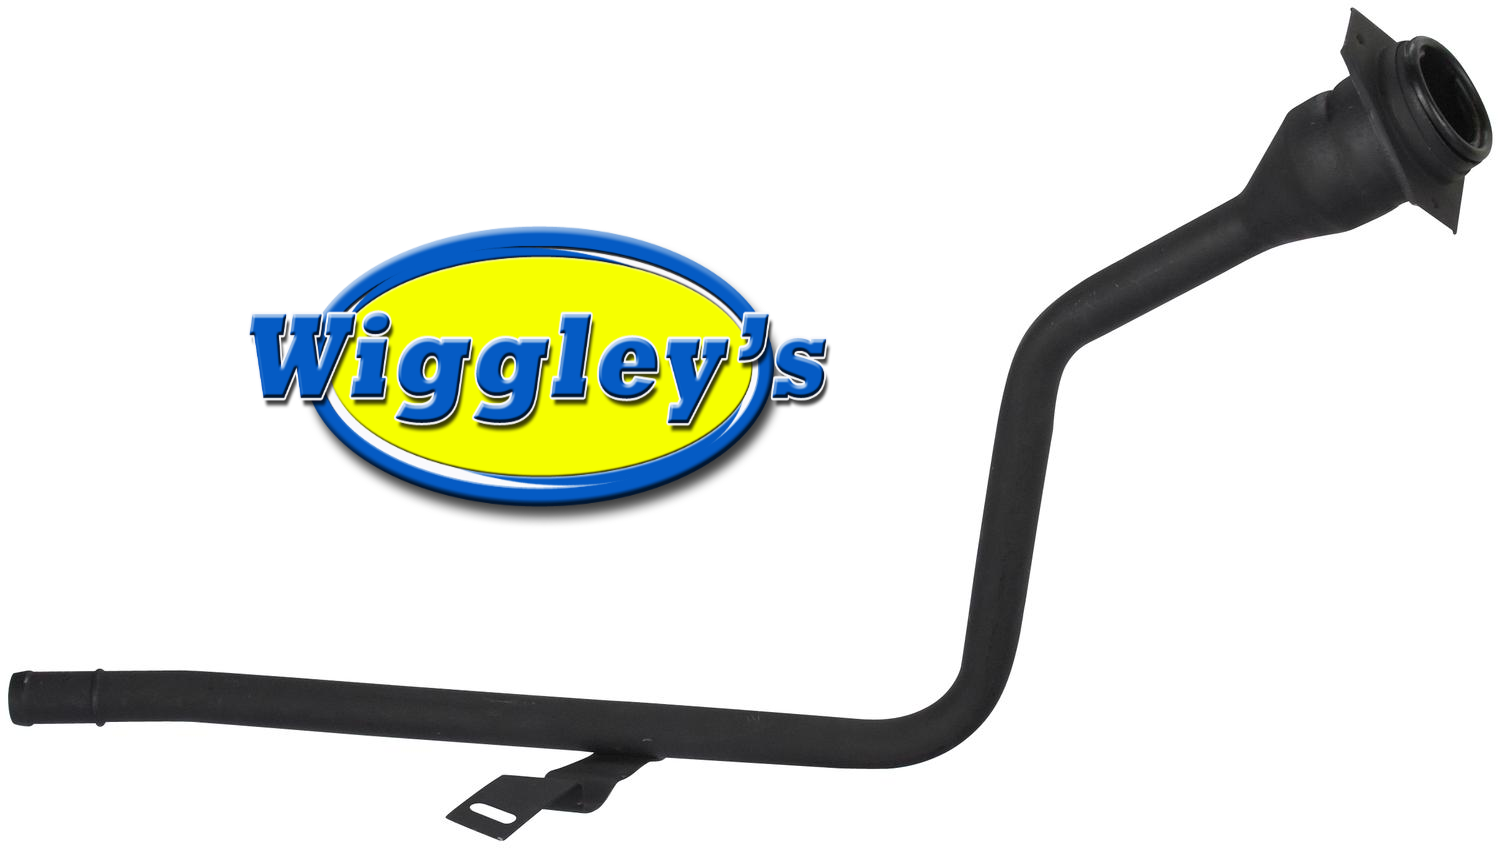 FUEL TANK FILLER NECK FNGM-115 FN719 FOR 00 01 02 03 04 05 BUICK CENTURY & REGAL